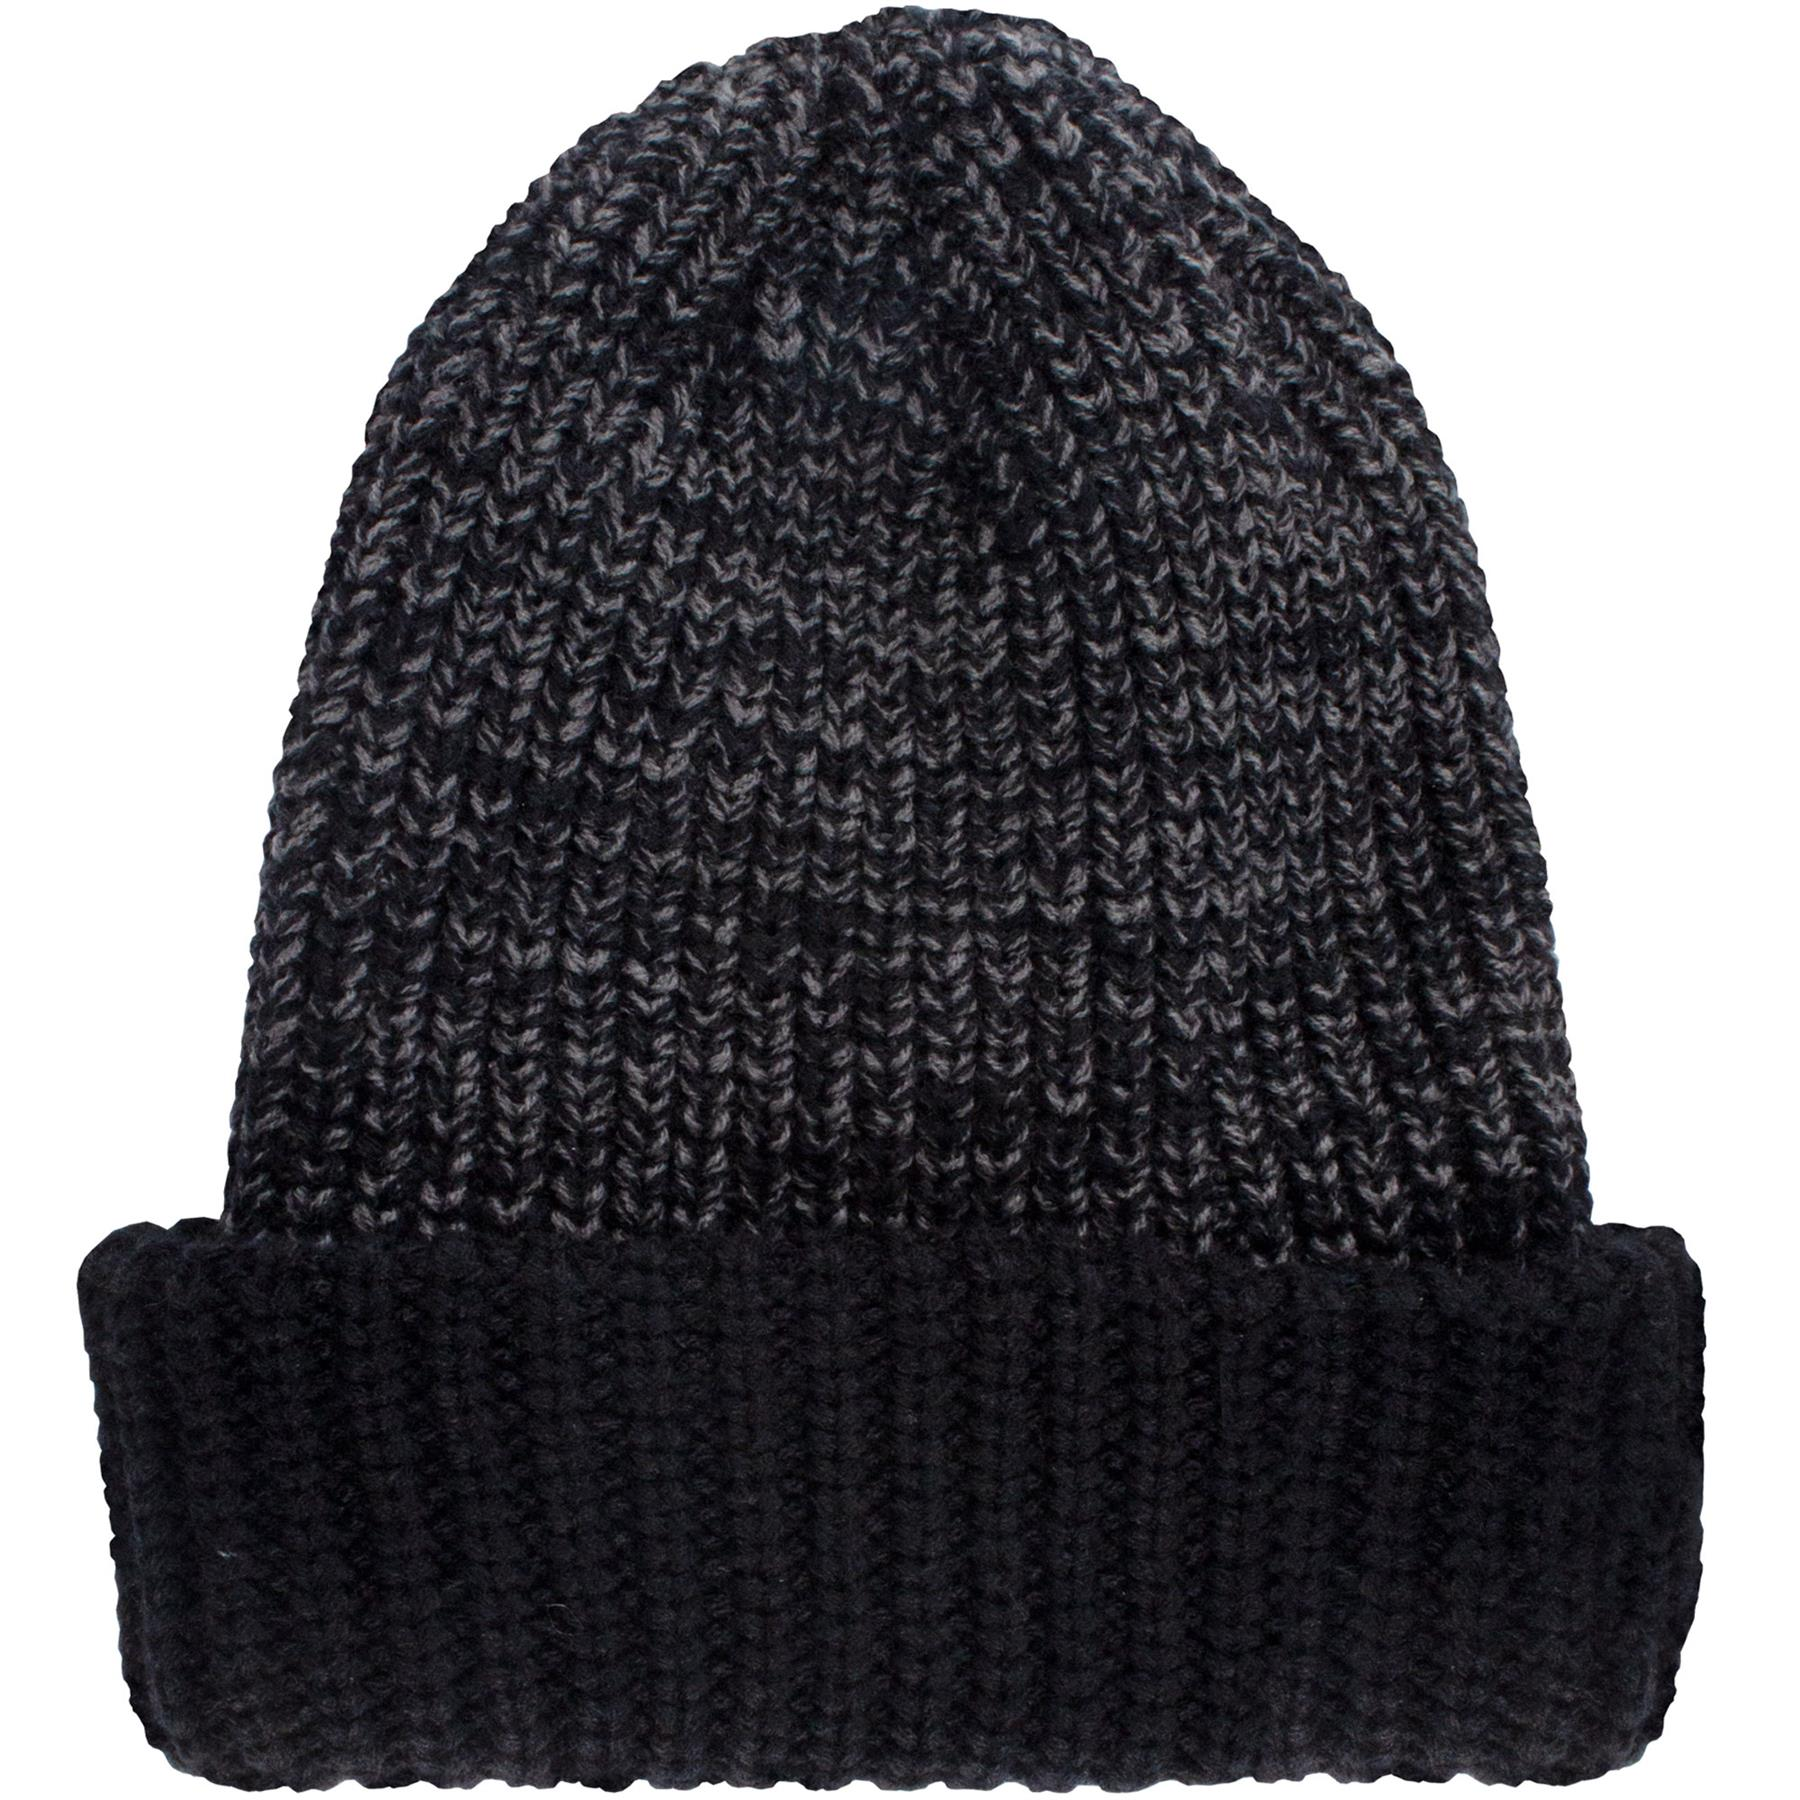 Mens Knitted Hat Thermal Insulated Warm Winter WoolyOutdoor Chunky Beanie BlacK